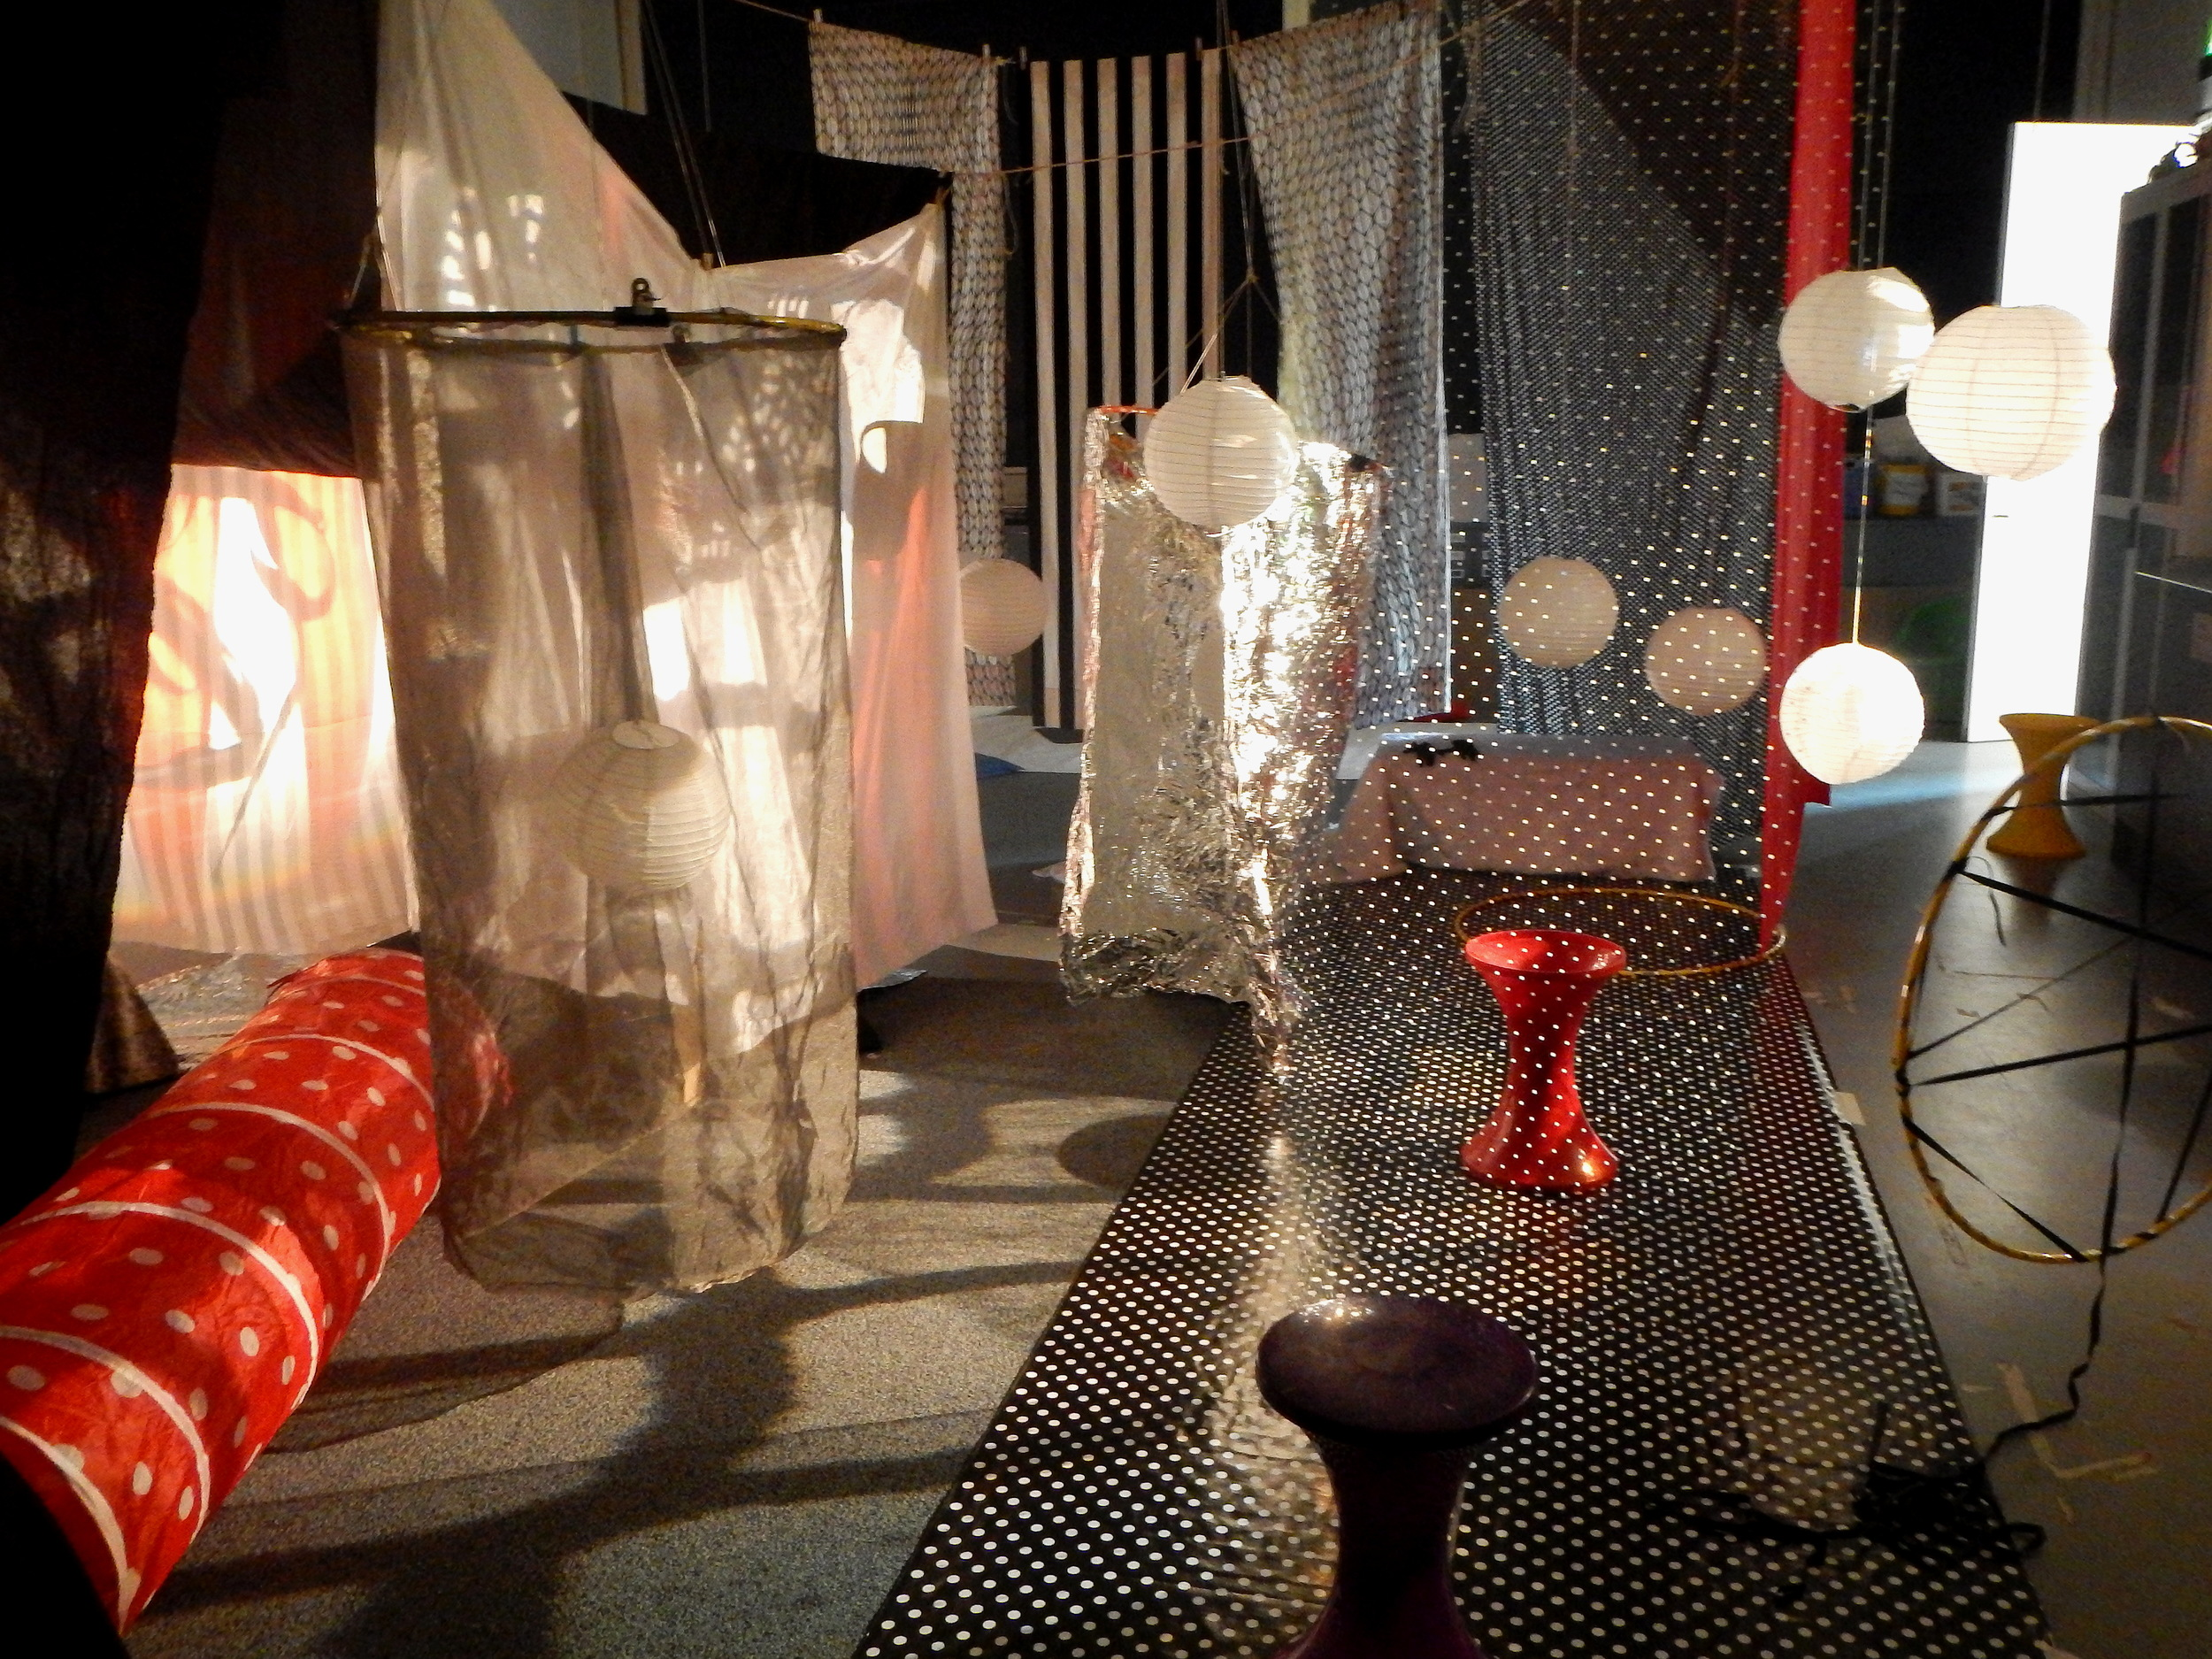 Immersive Installation at Mini Art Club Manchester: inspired by Modern Japanese Design